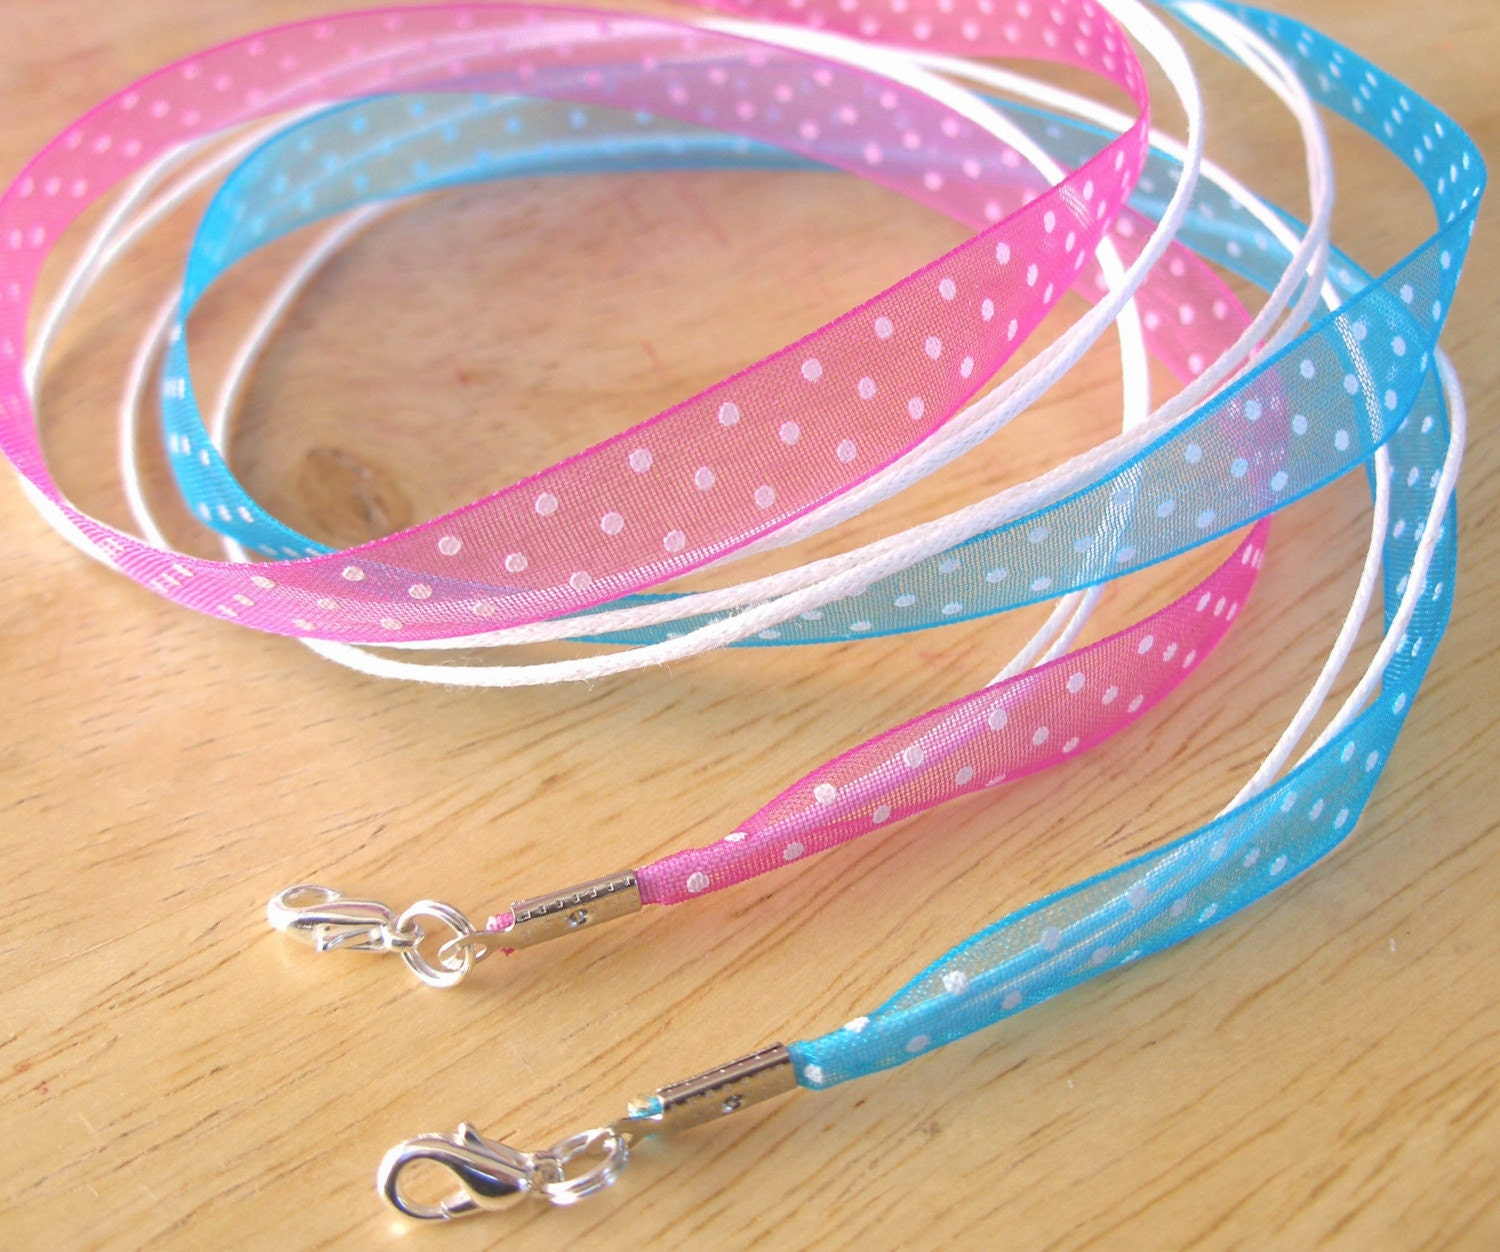 12 - Polka Dot Organza Cord Necklaces - 8 Colors, Any length, Fits Scrabble/Glass Tile Pendants - Handmade in USA